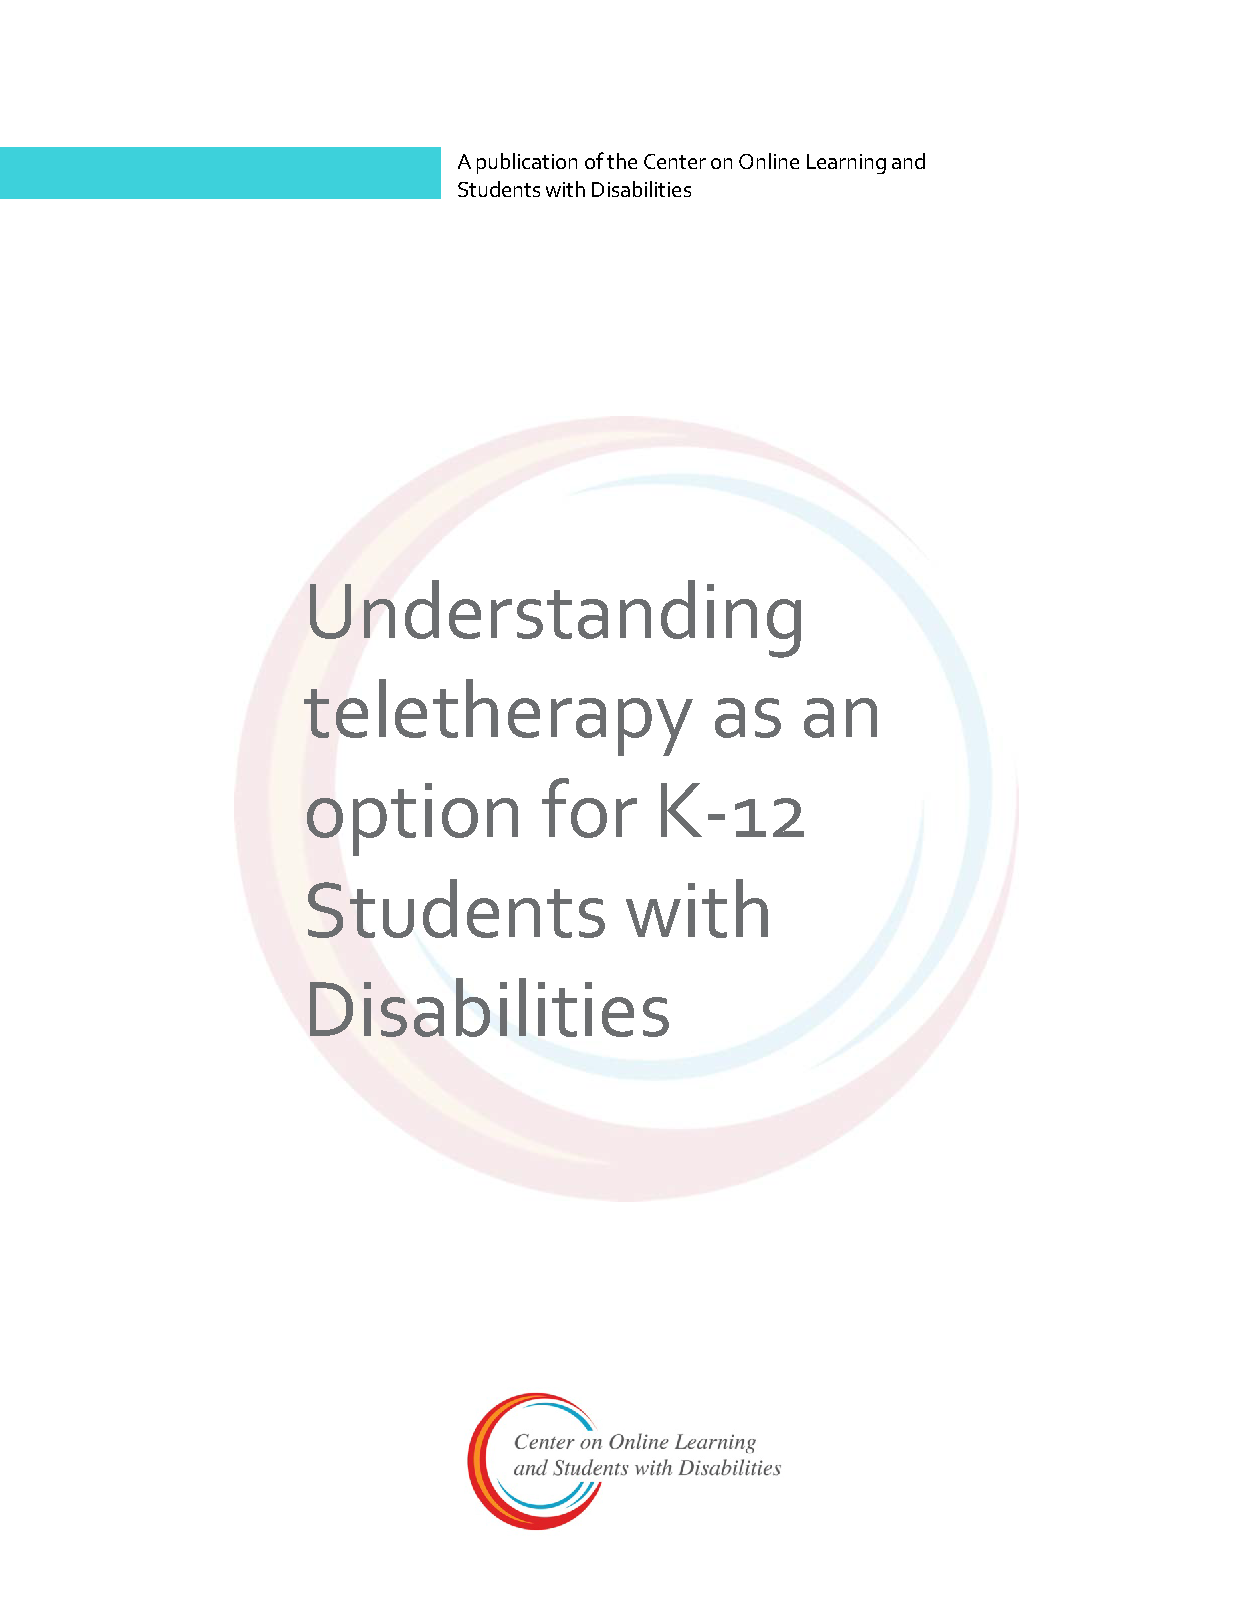 Understanding Teletherapy As An Option For K-12 Students With Disabilities